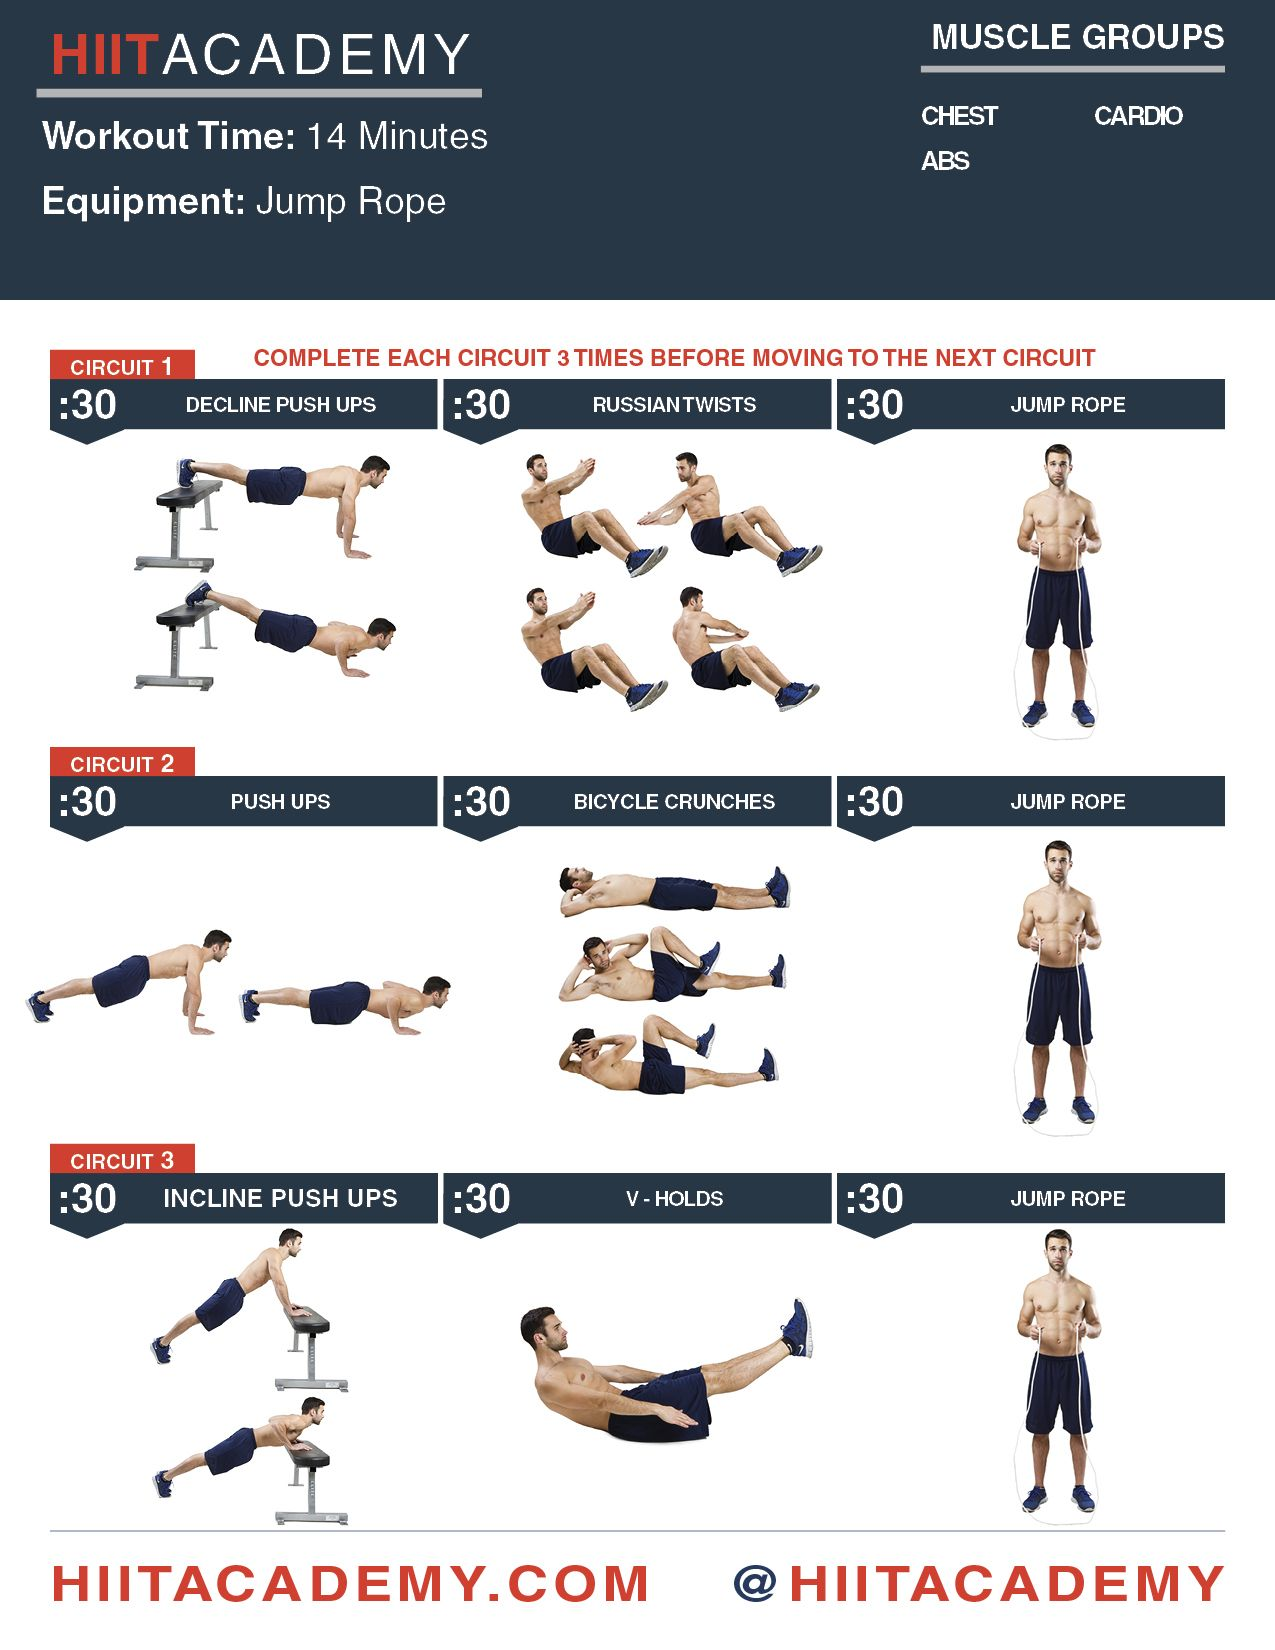 Chest Ab Cardio Hiit Workout